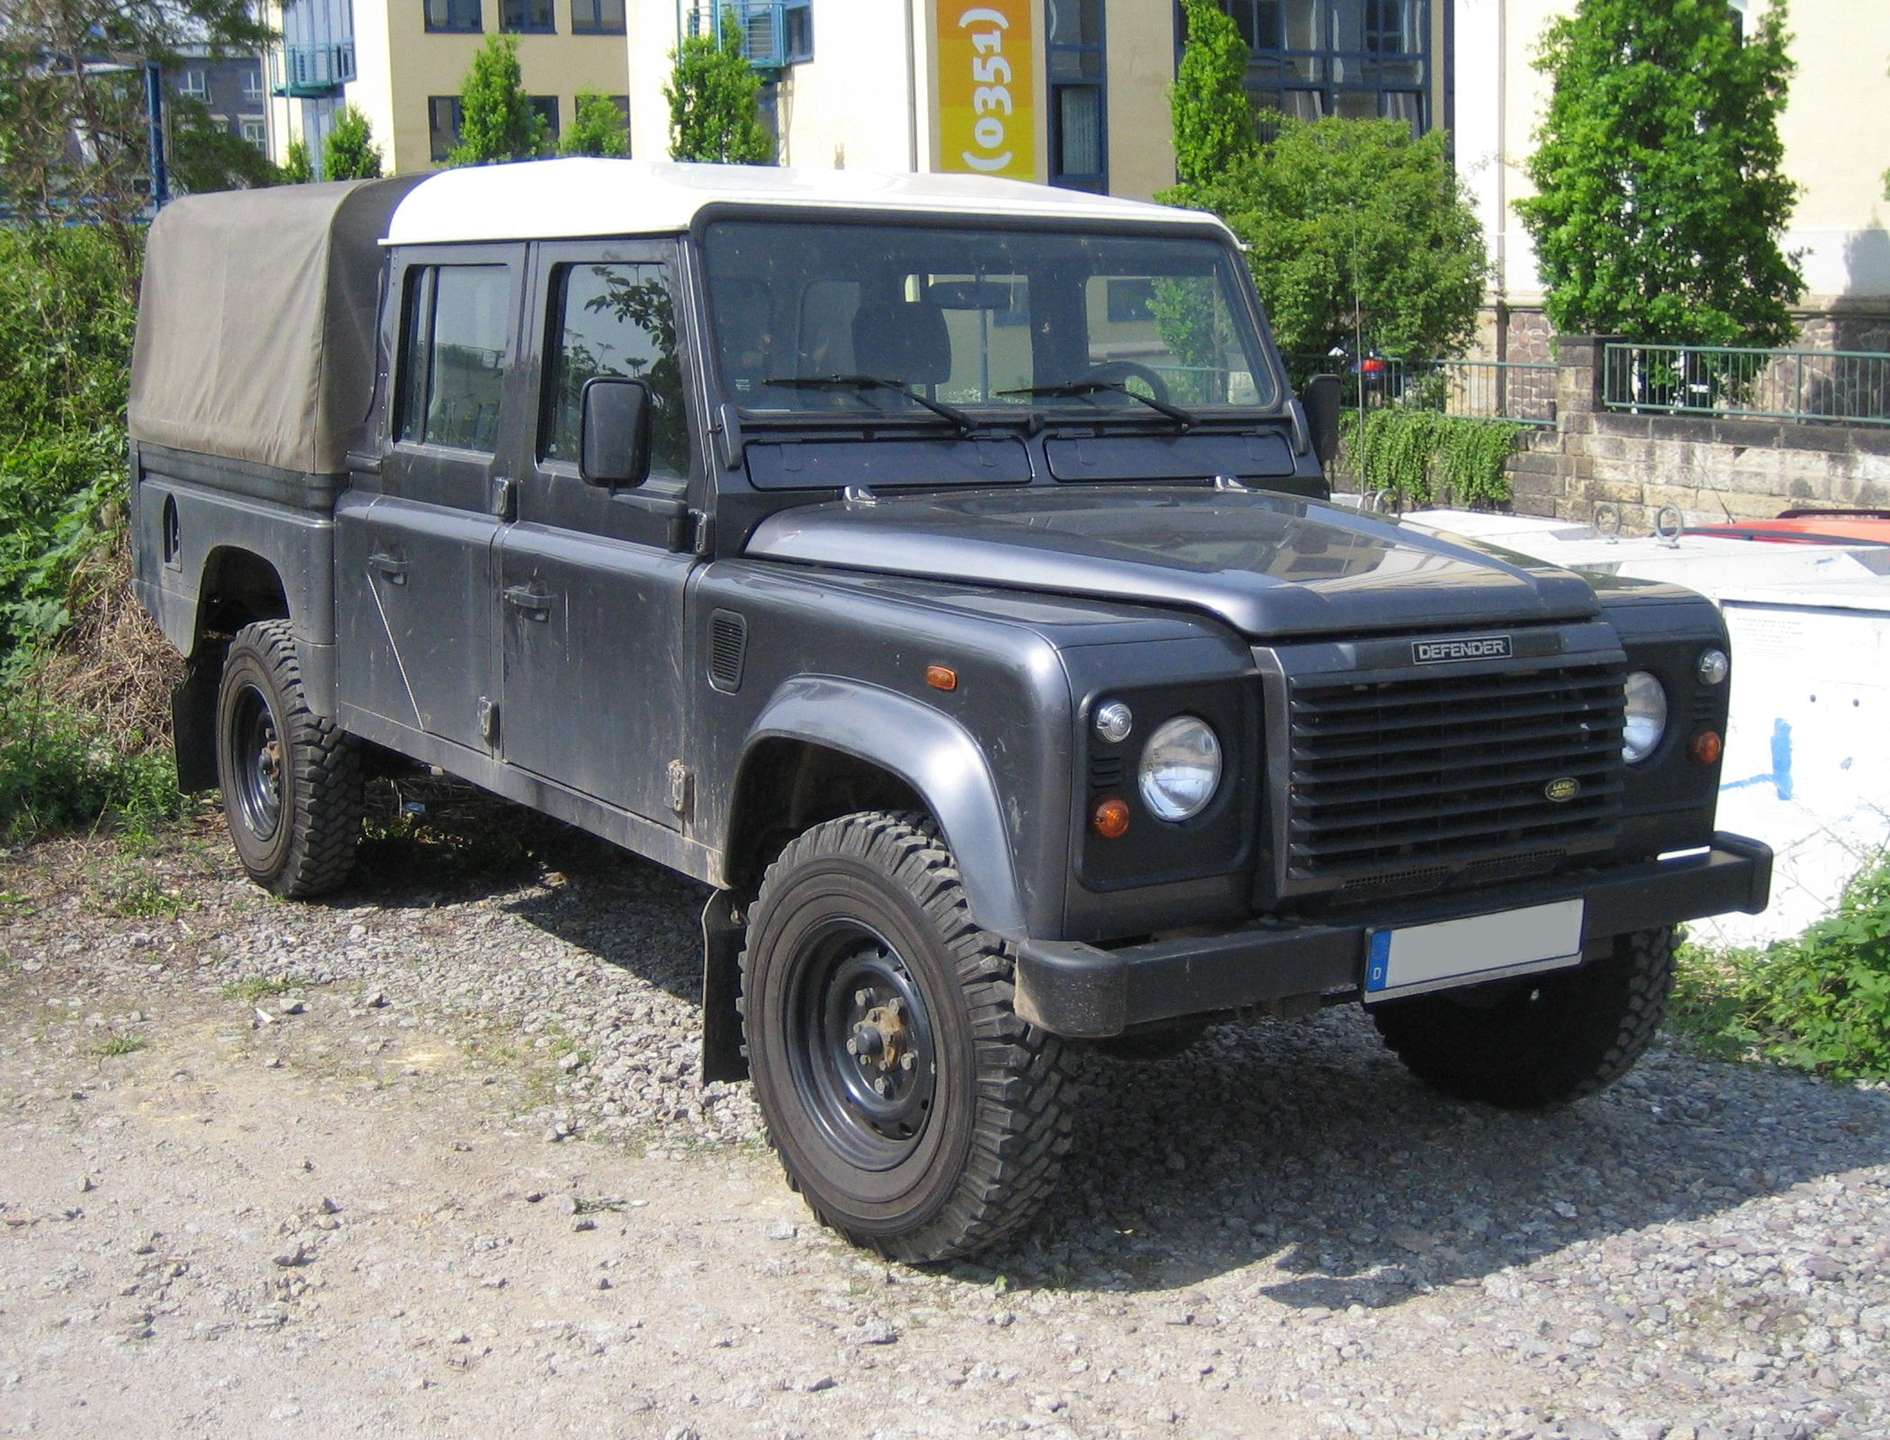 Land-Rover Defender 130 #9139978